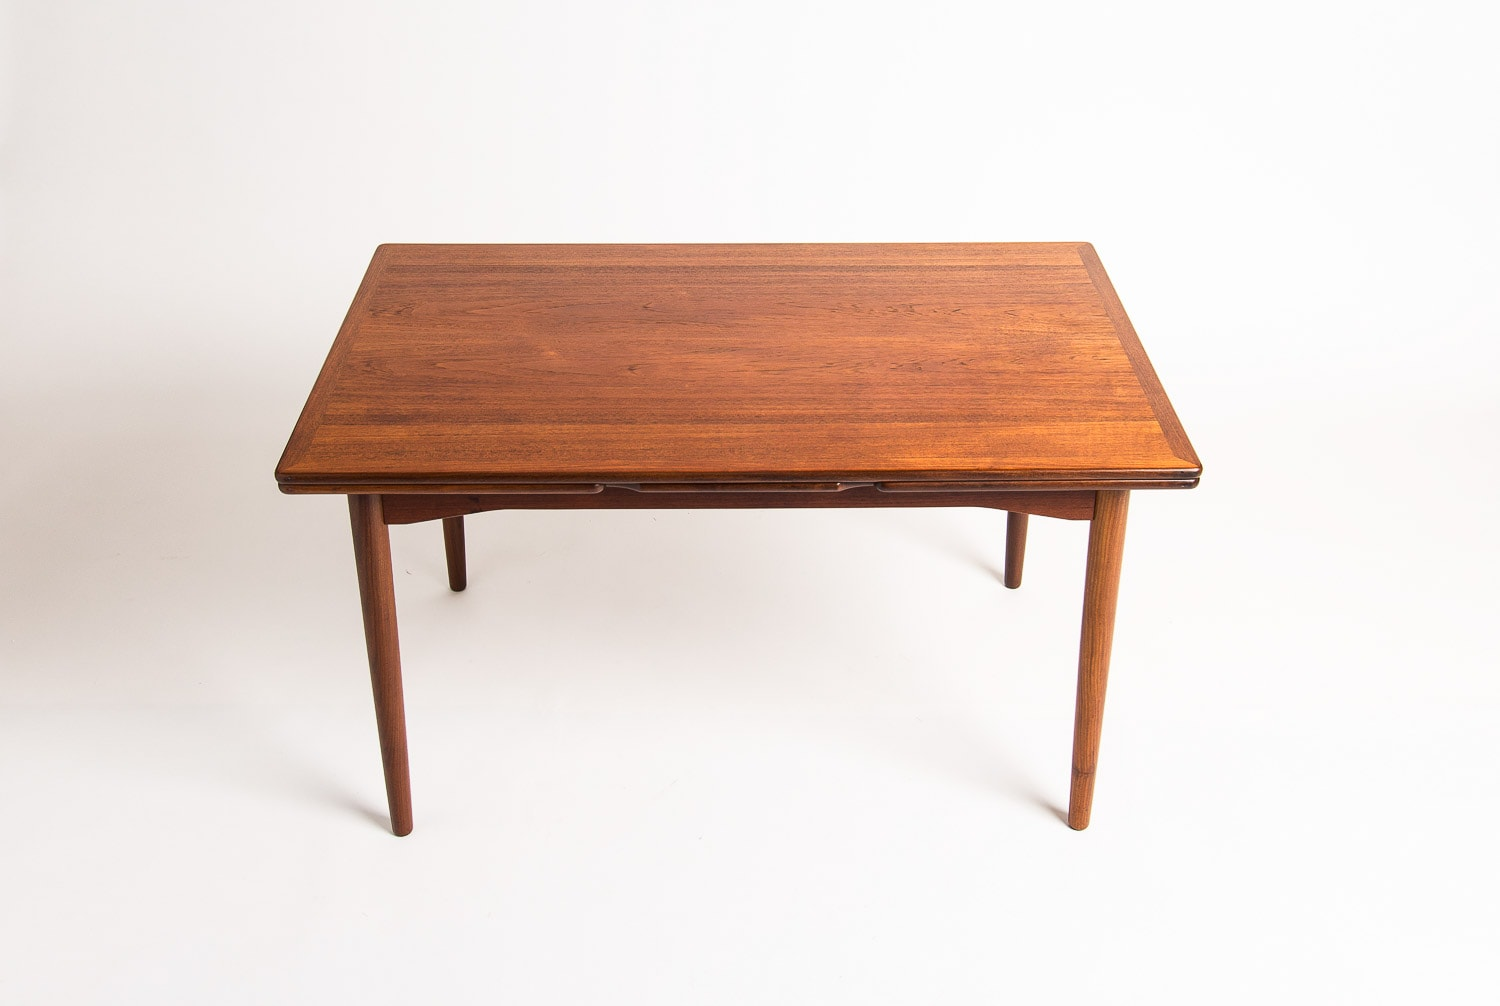 Danish furniture Teak dining table mid century London 1950's